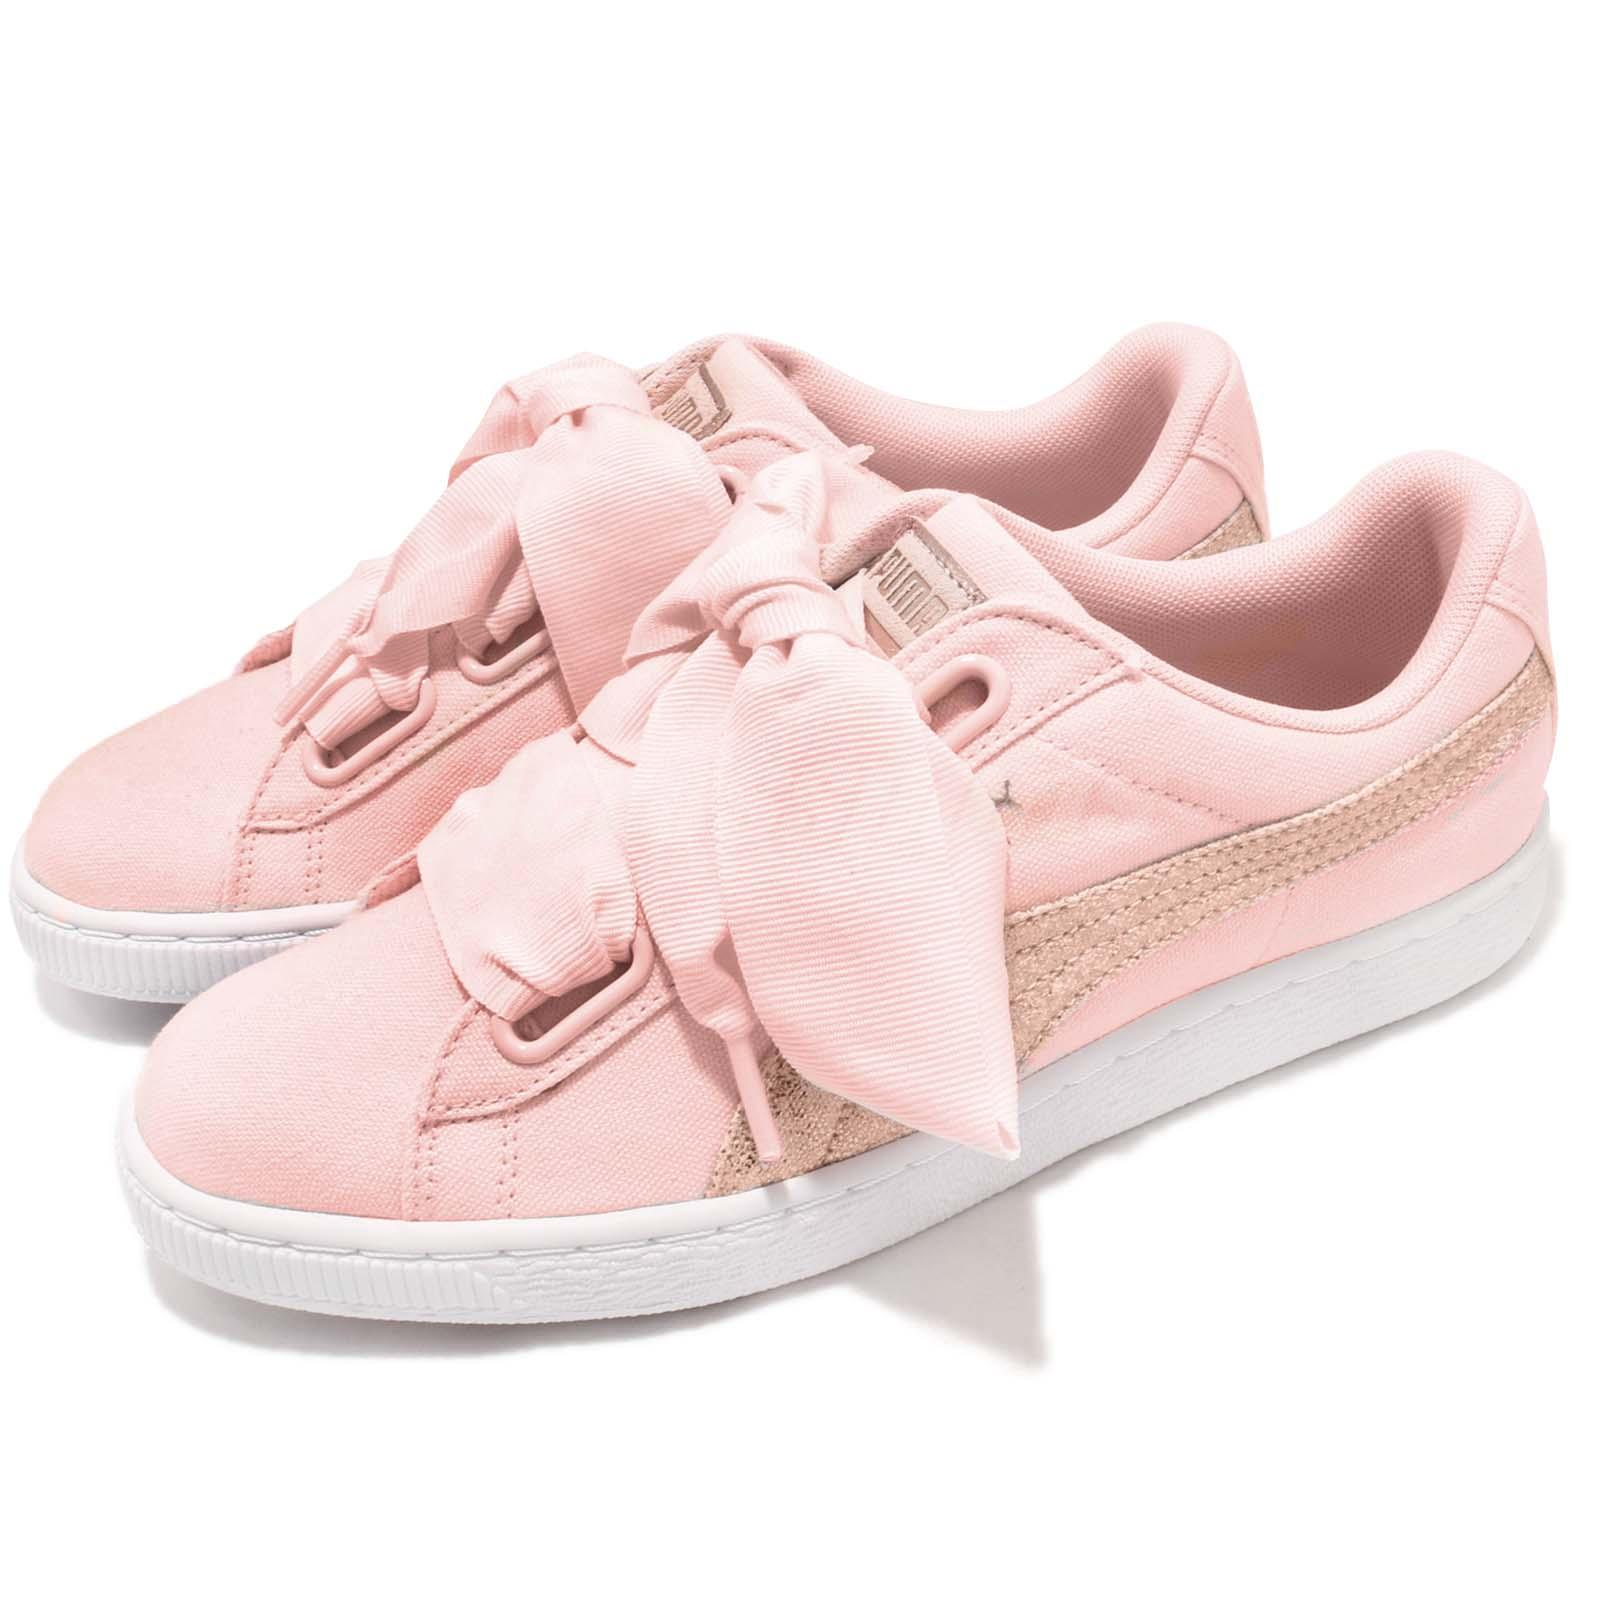 new product dd88d e66c0 Details about Puma Basket Heart Canvas Wns Pearl White Rose Gold Women  Casual Shoes 366495-02